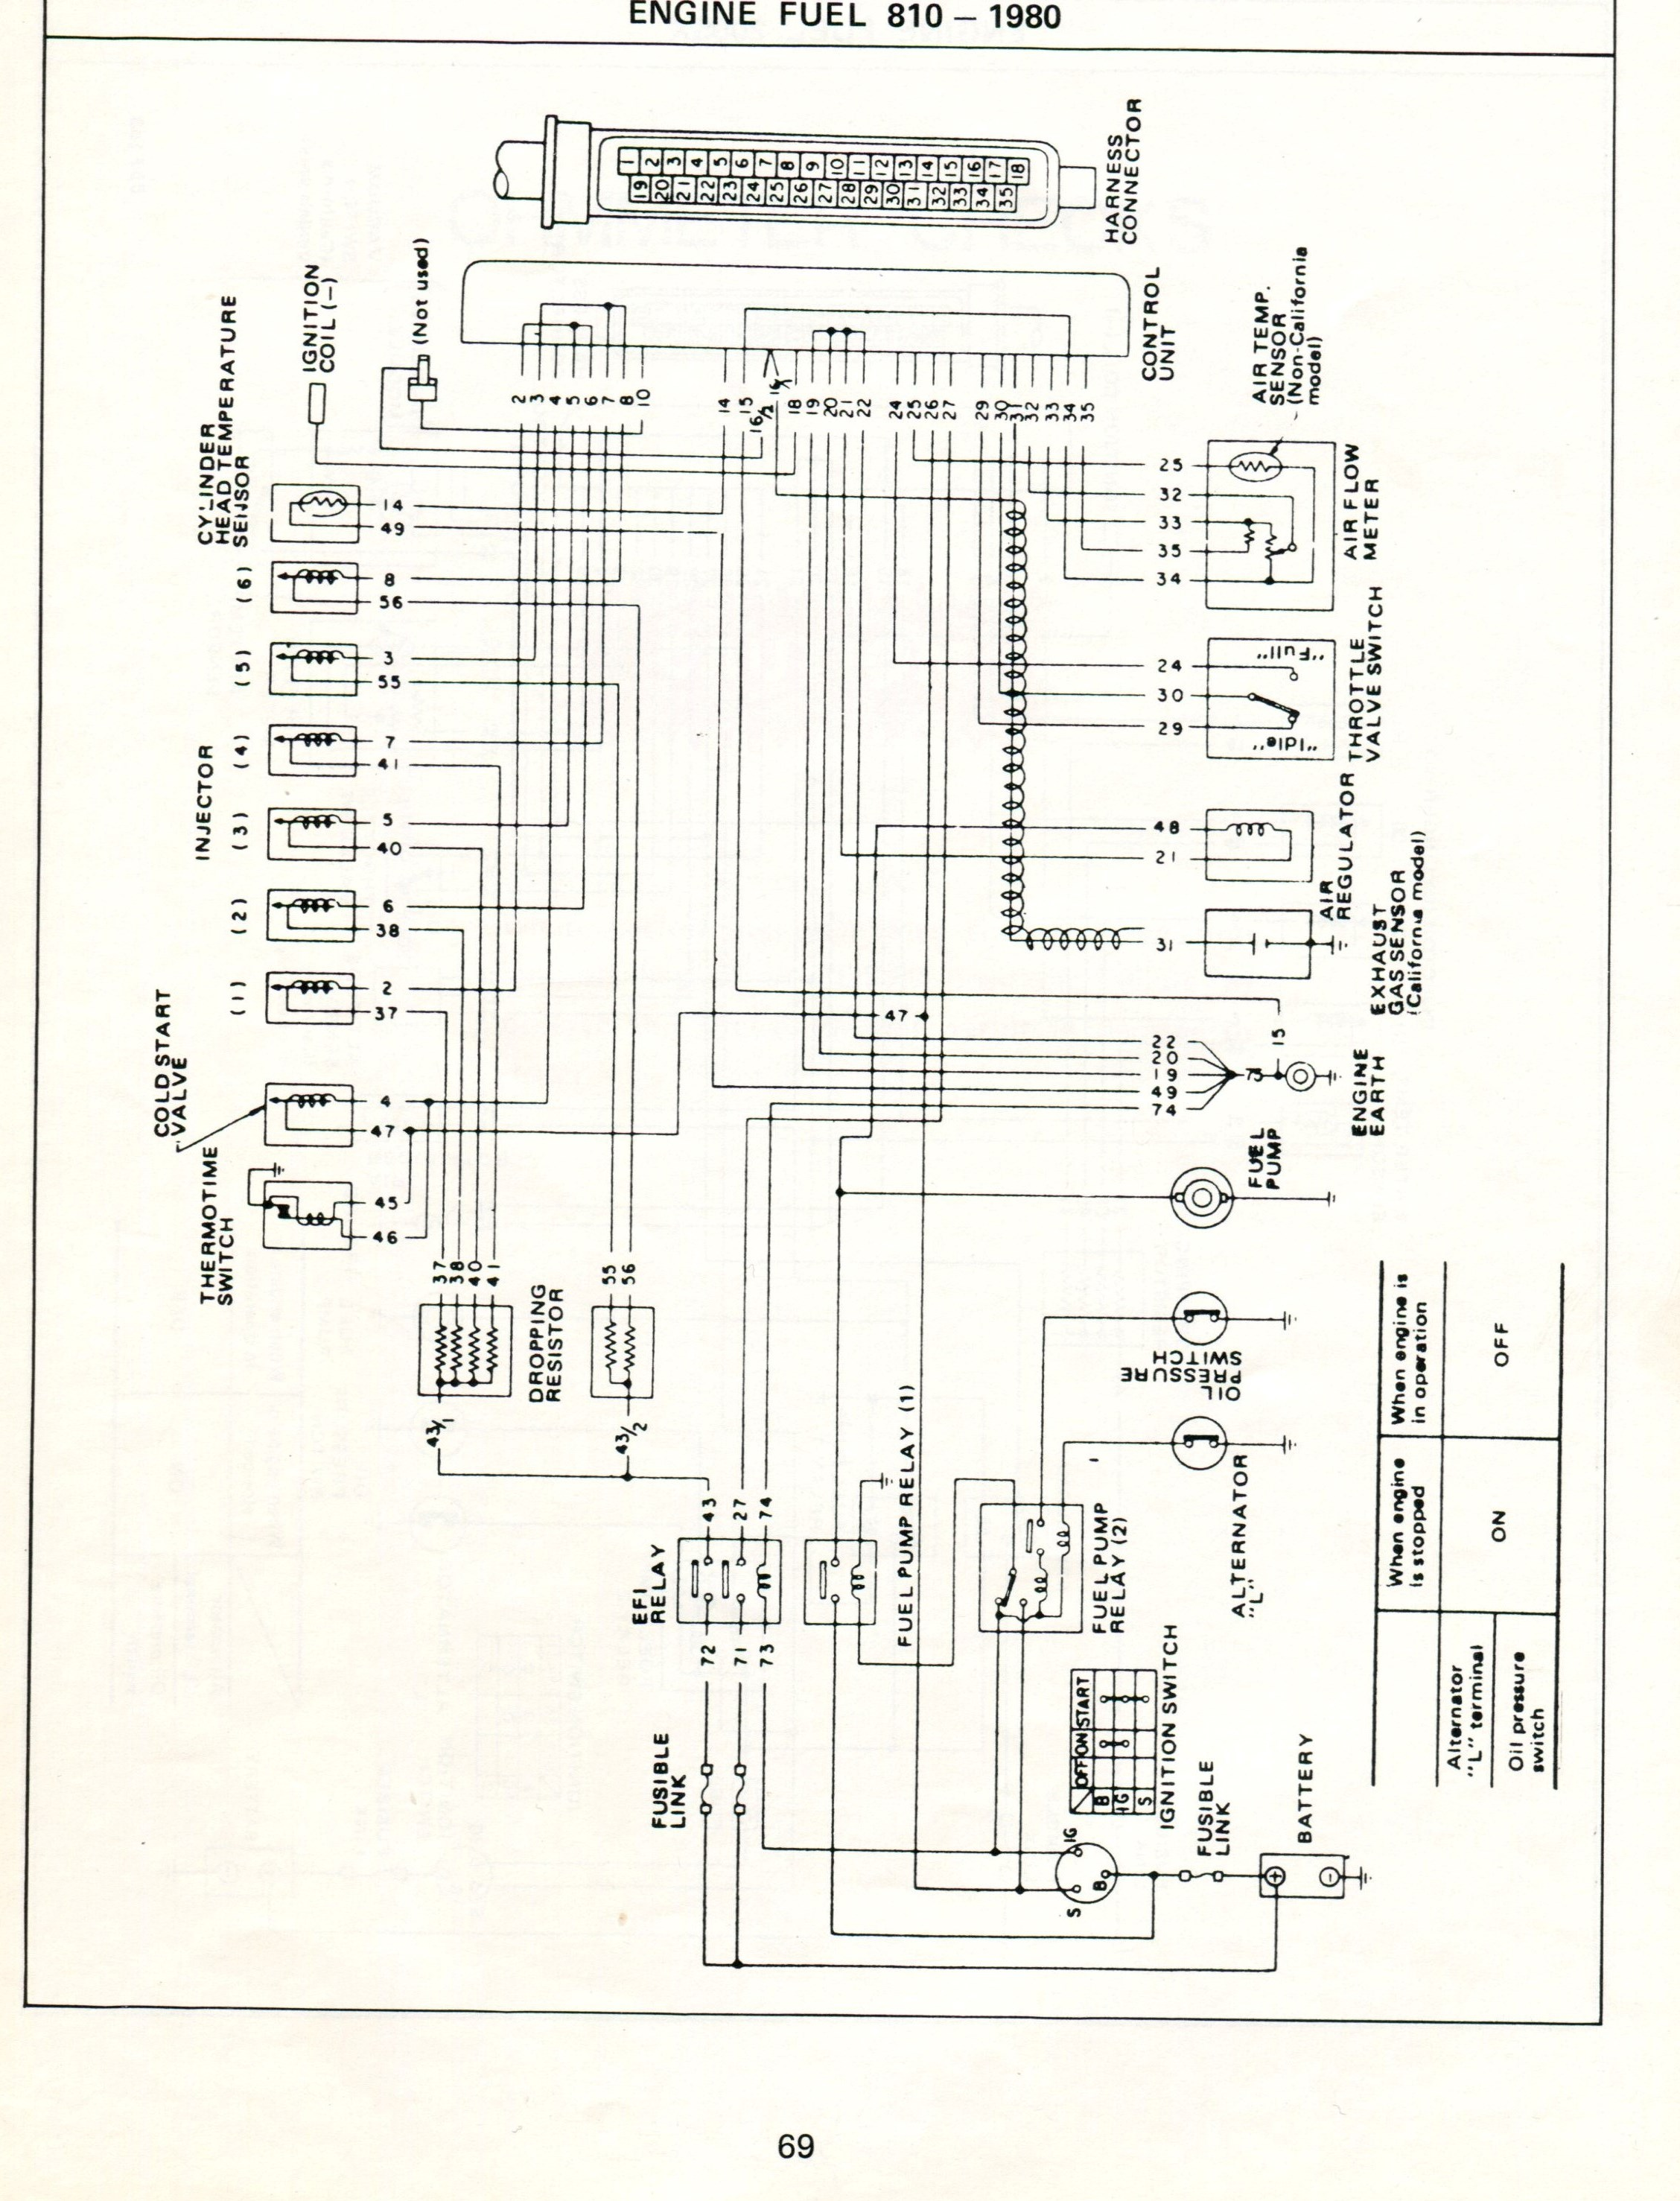 small resolution of 1979 280zx wiring diagram wiring diagram page datsun electronic fuel injection wiring diagrams